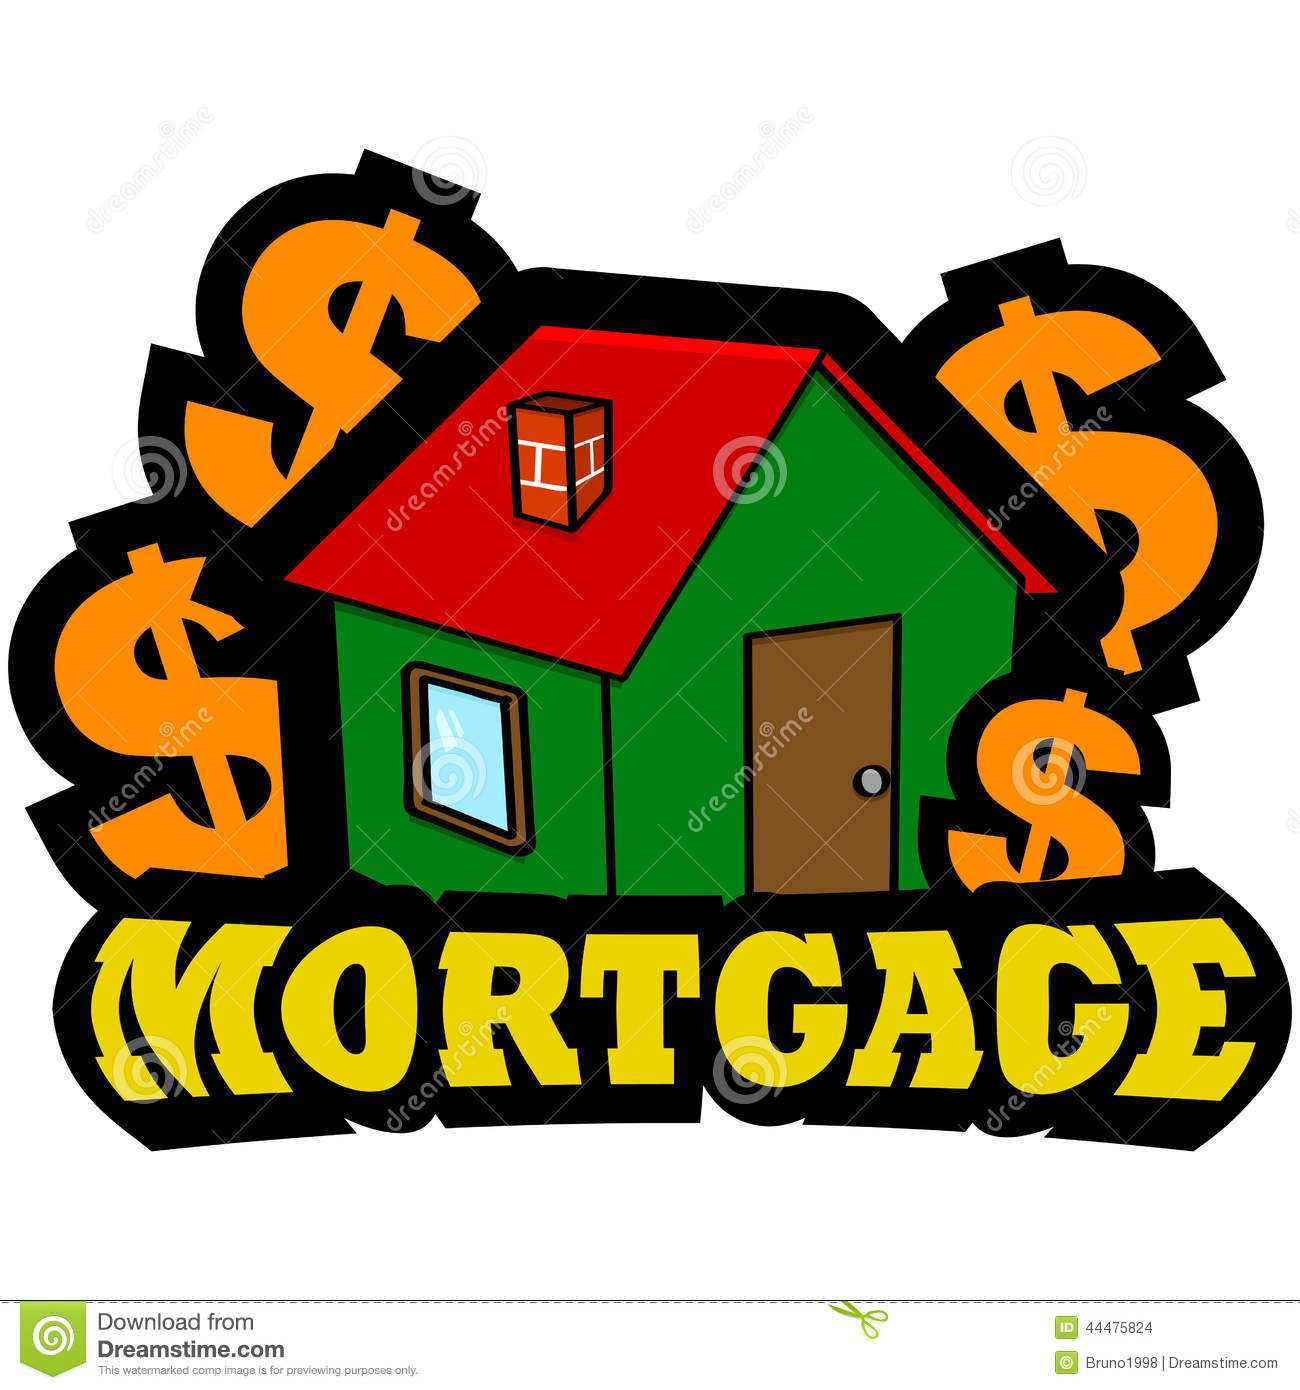 Mortgage clipart free picture black and white stock Mortgage Clip Art Free | Clipart Panda - Free Clipart Images picture black and white stock